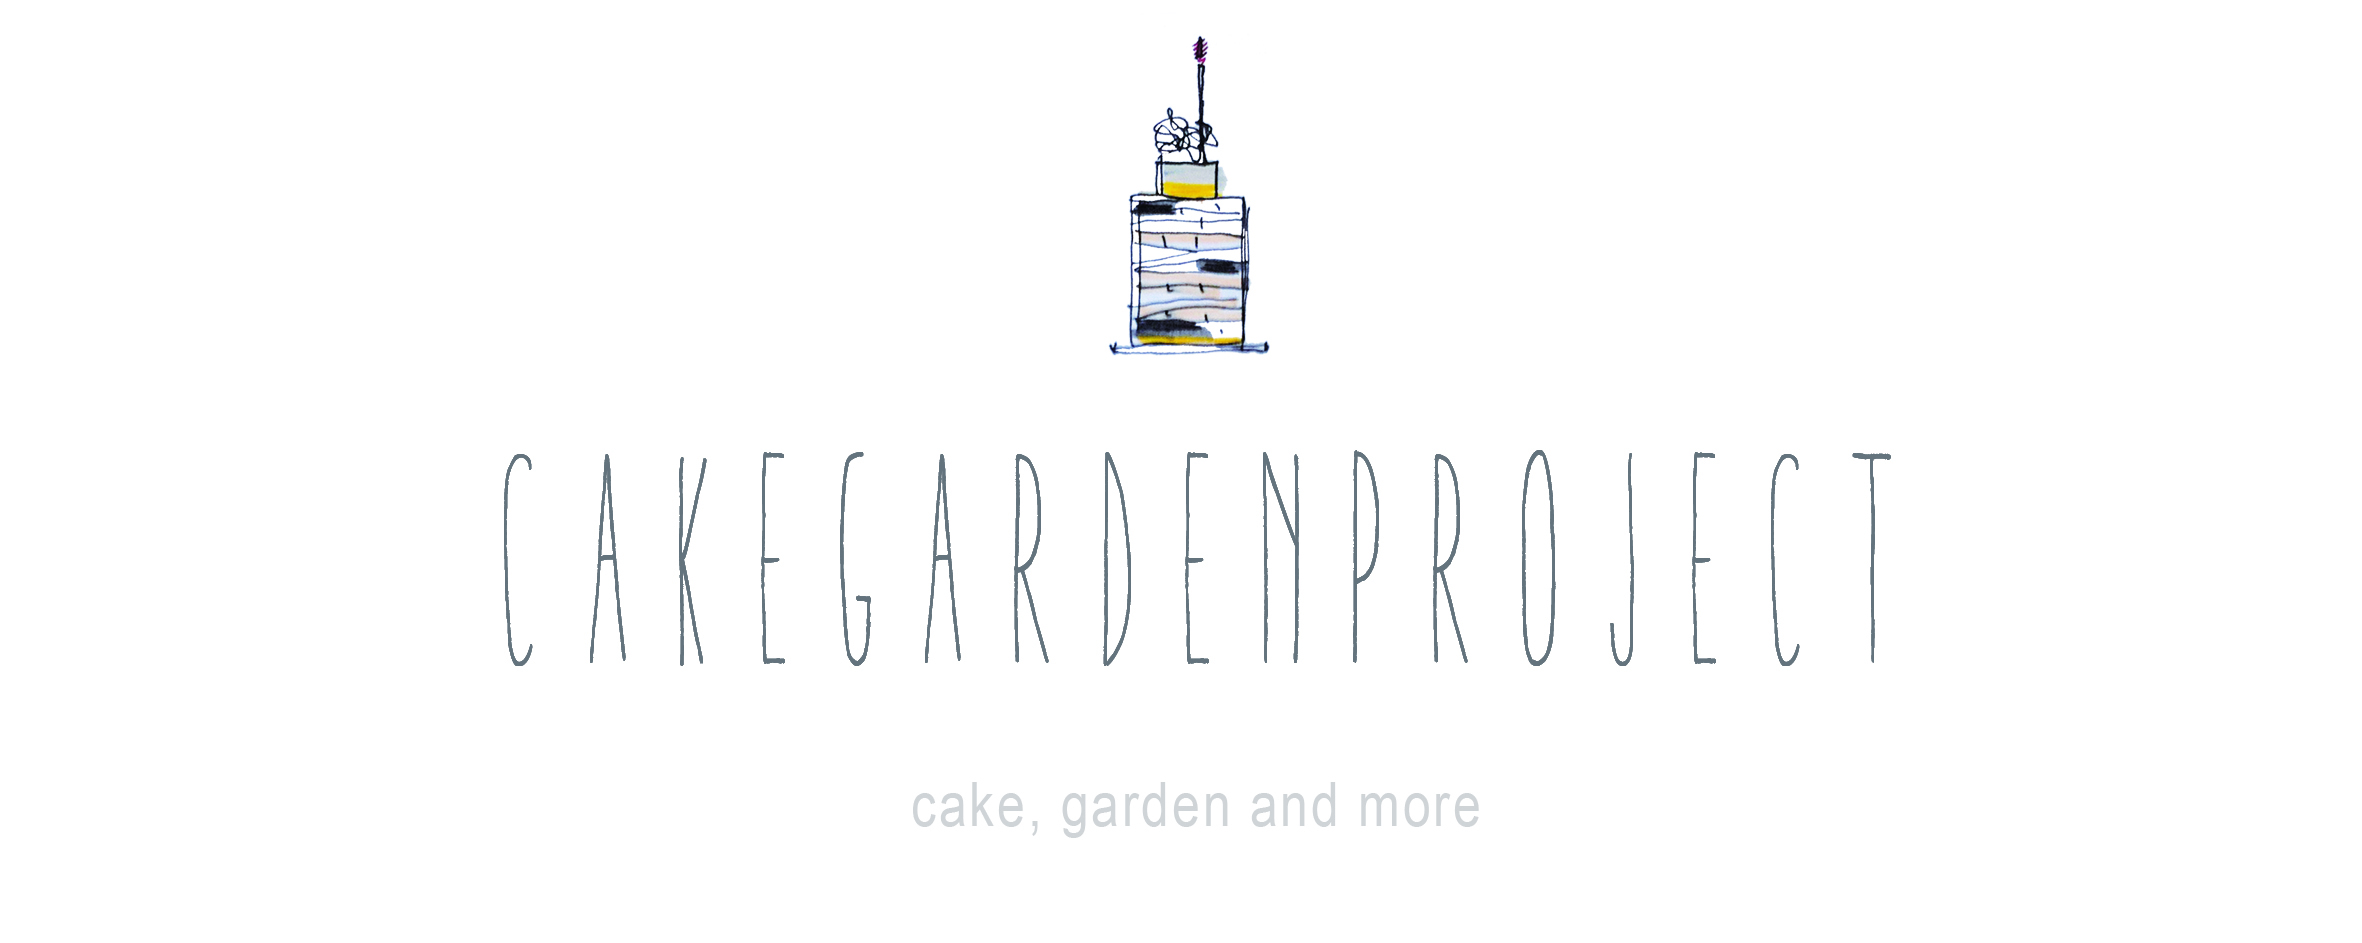 Cakegardenproject -